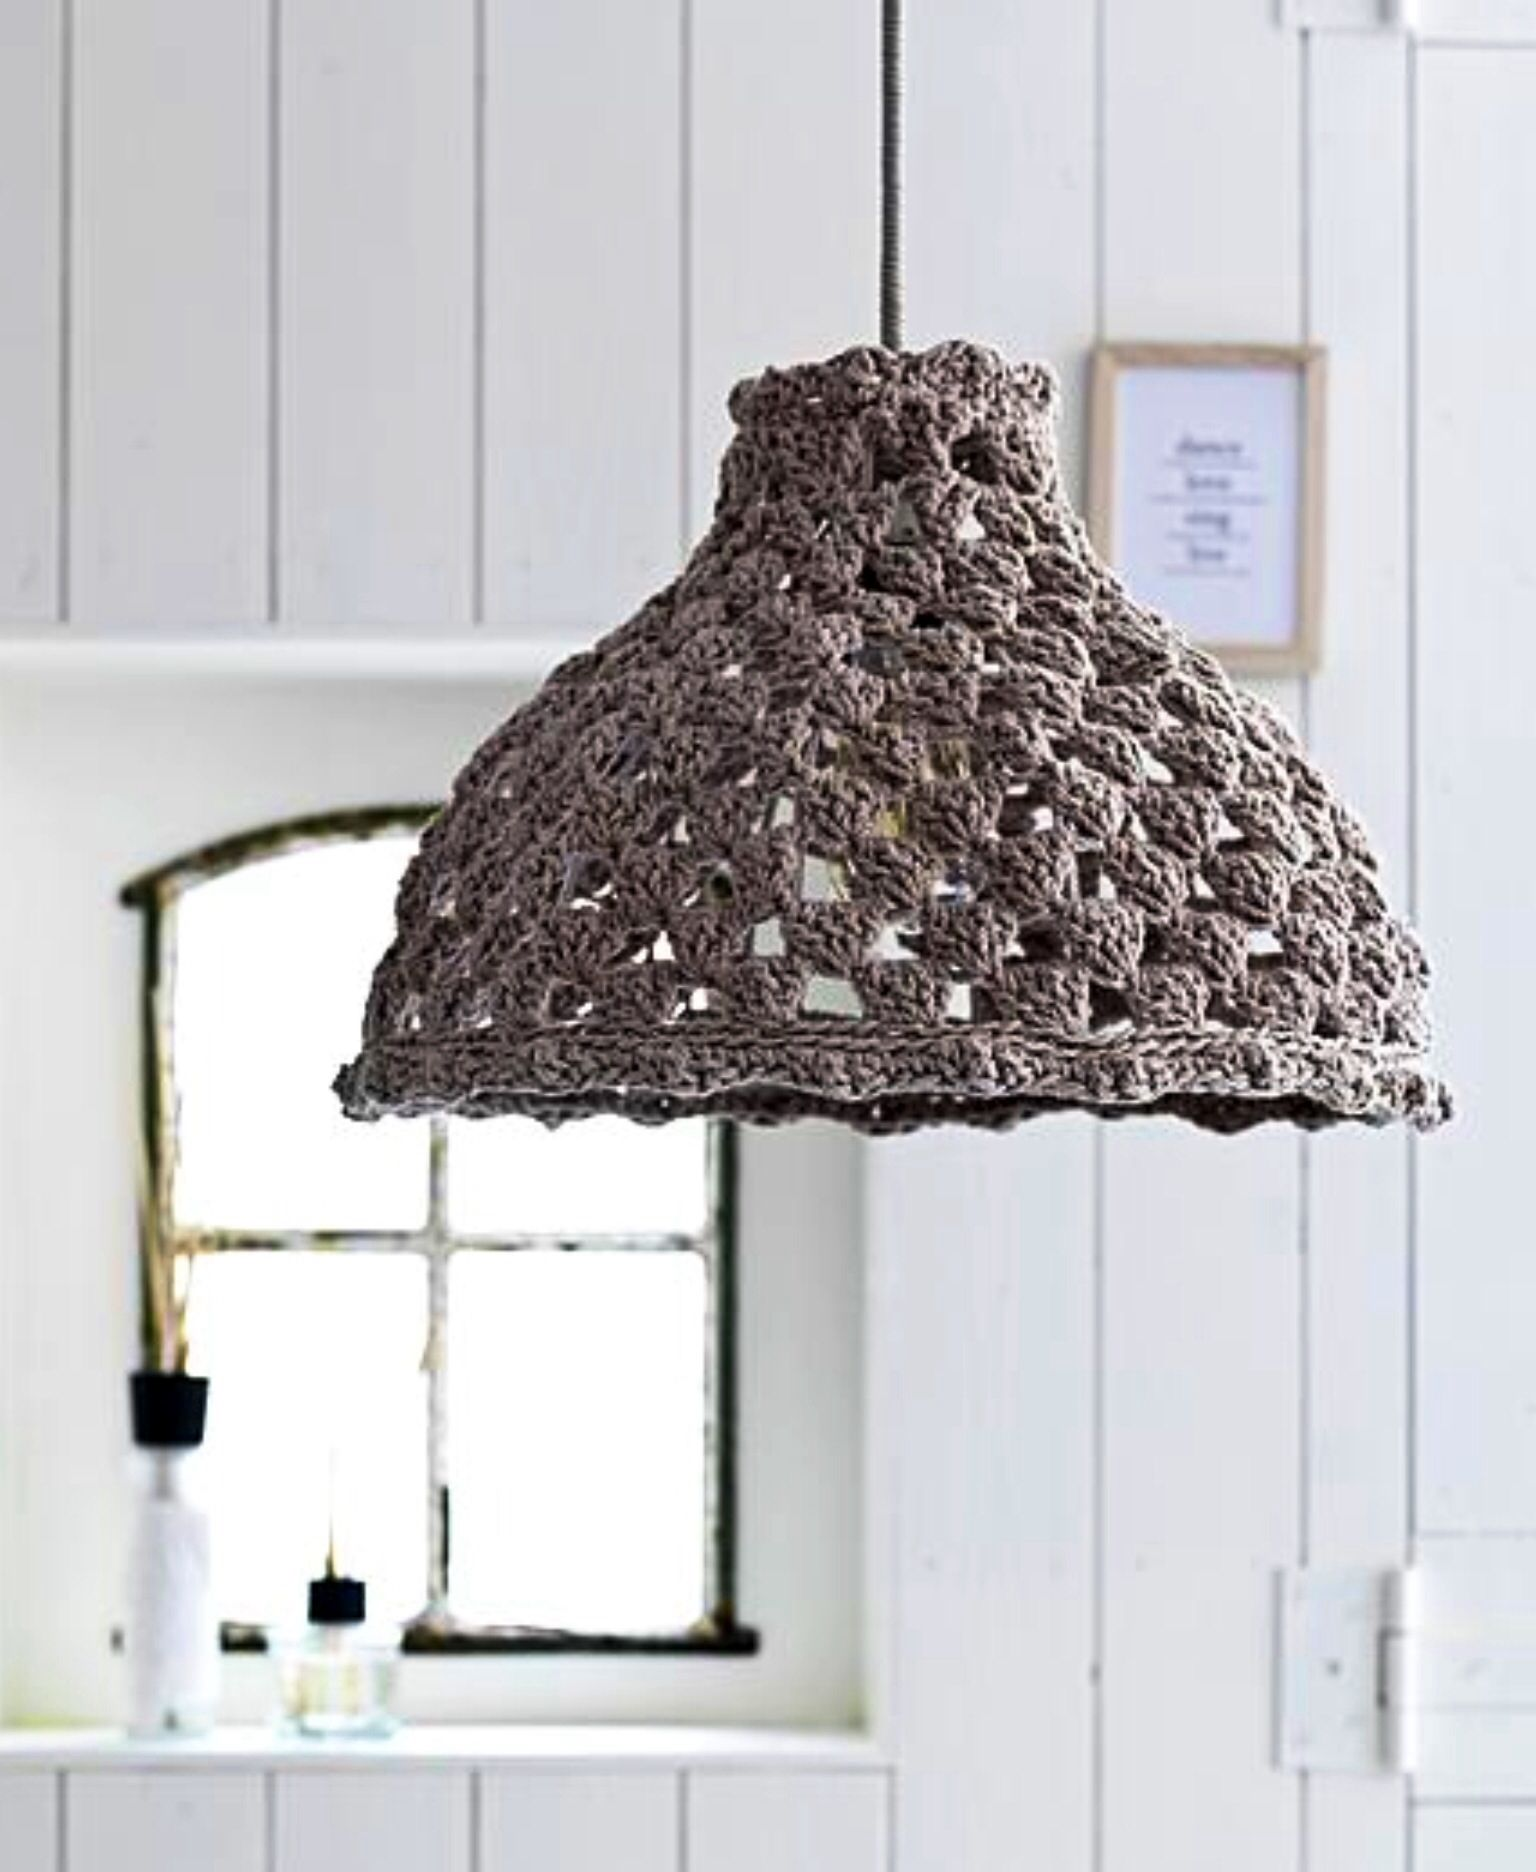 crochet d co lampe pour la maison pinterest crochet. Black Bedroom Furniture Sets. Home Design Ideas